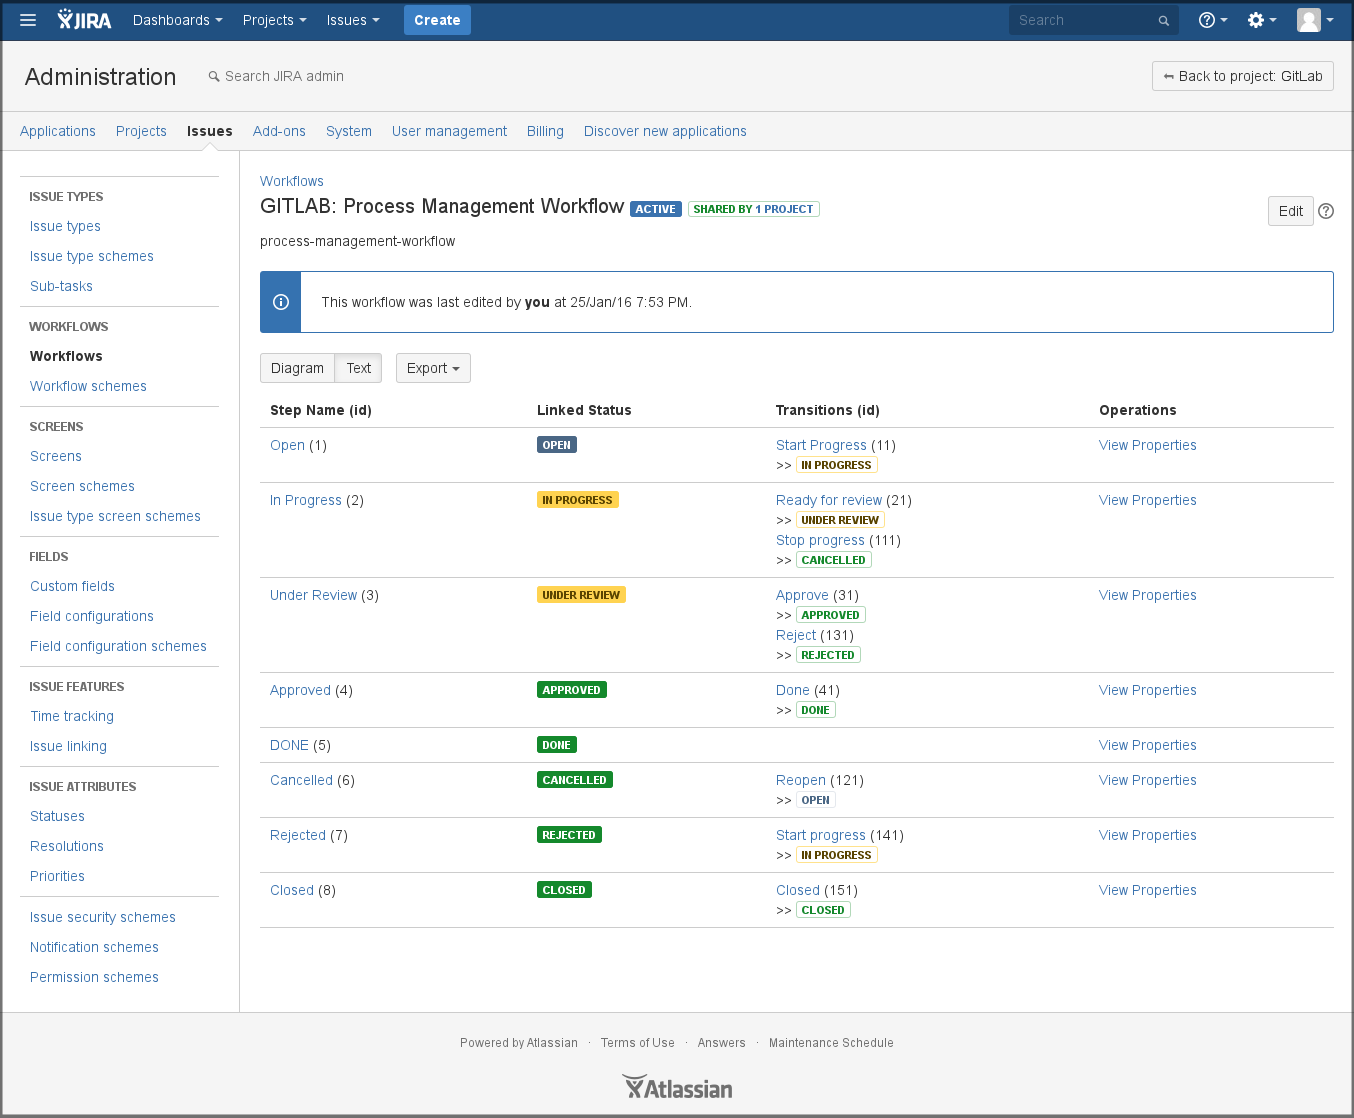 doc/project_services/img/jira_issues_workflow.png